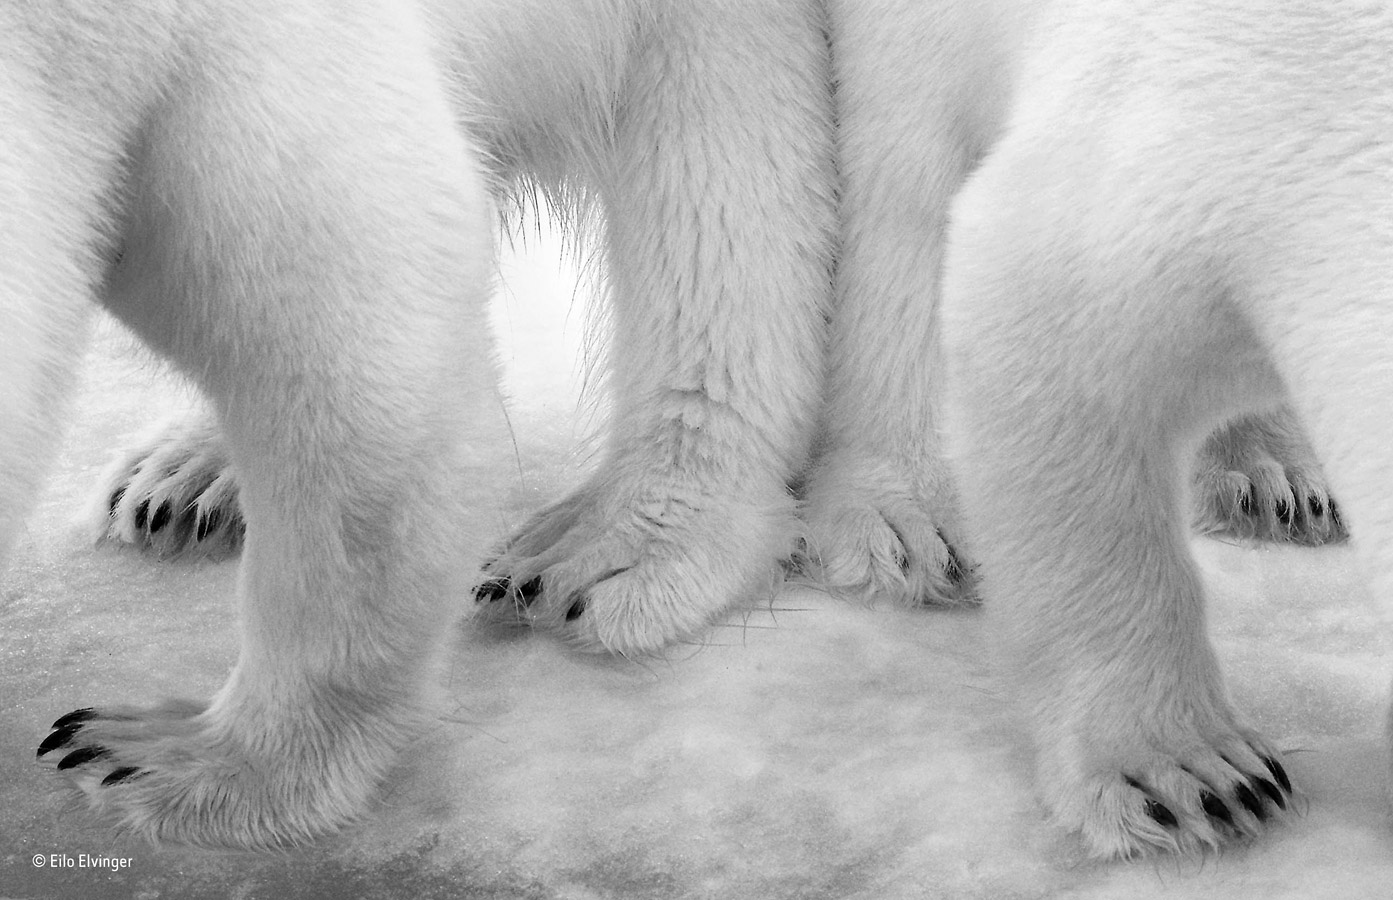 Polar pas de deux, © Eilo Elvinger, Luxembourg, Black and White Winner, Wildlife Photographer of the Year